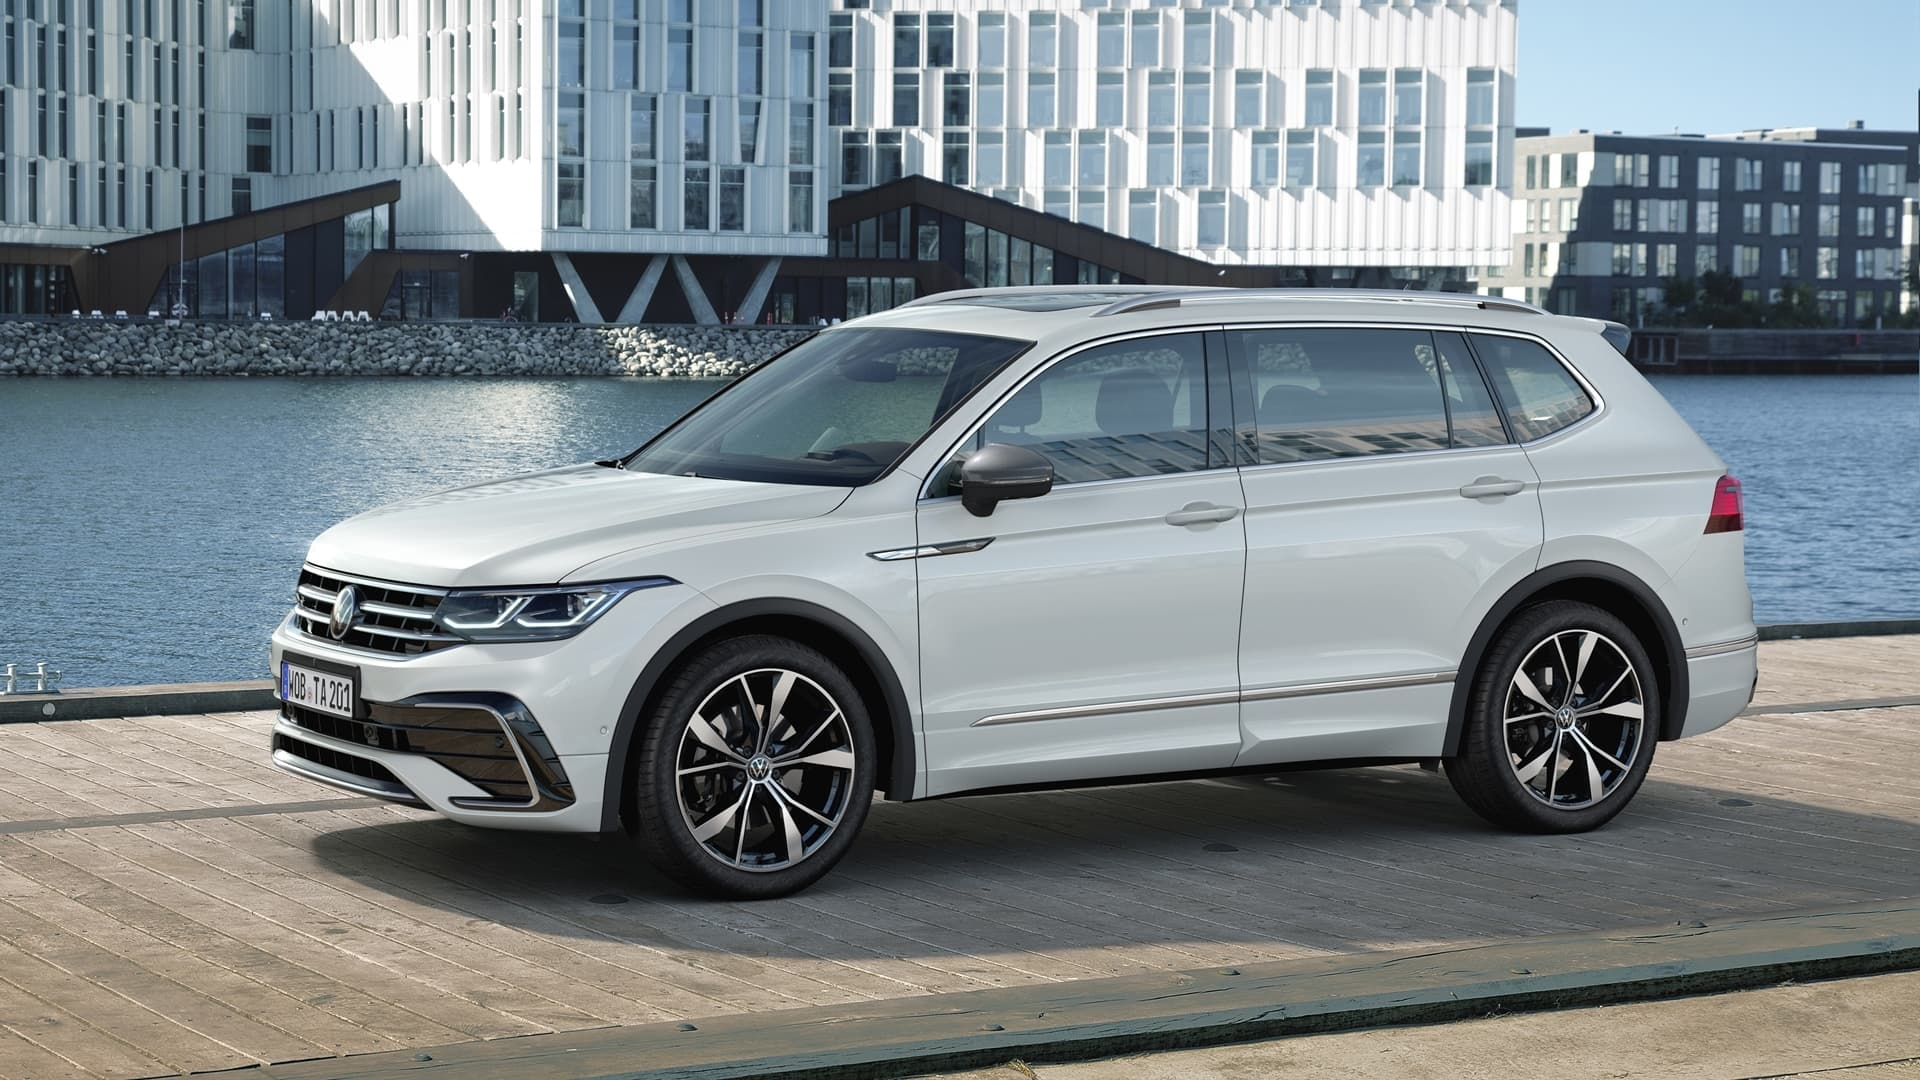 Volkswagen Tiguan Allspace 2021 Frontal Lateral 05121 003